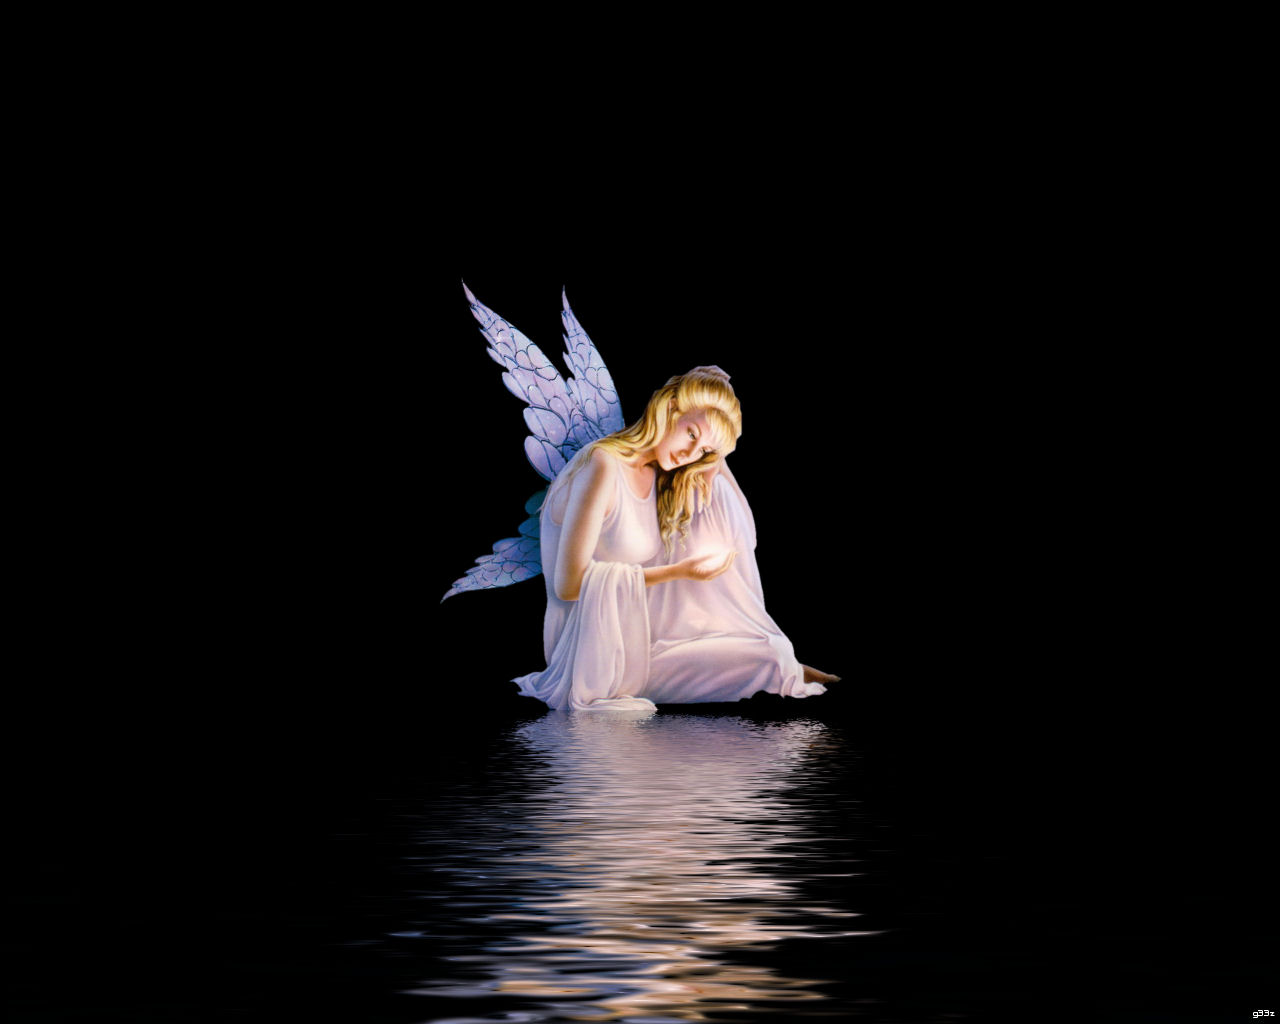 wallpaper: Wallpaper Of A Angel